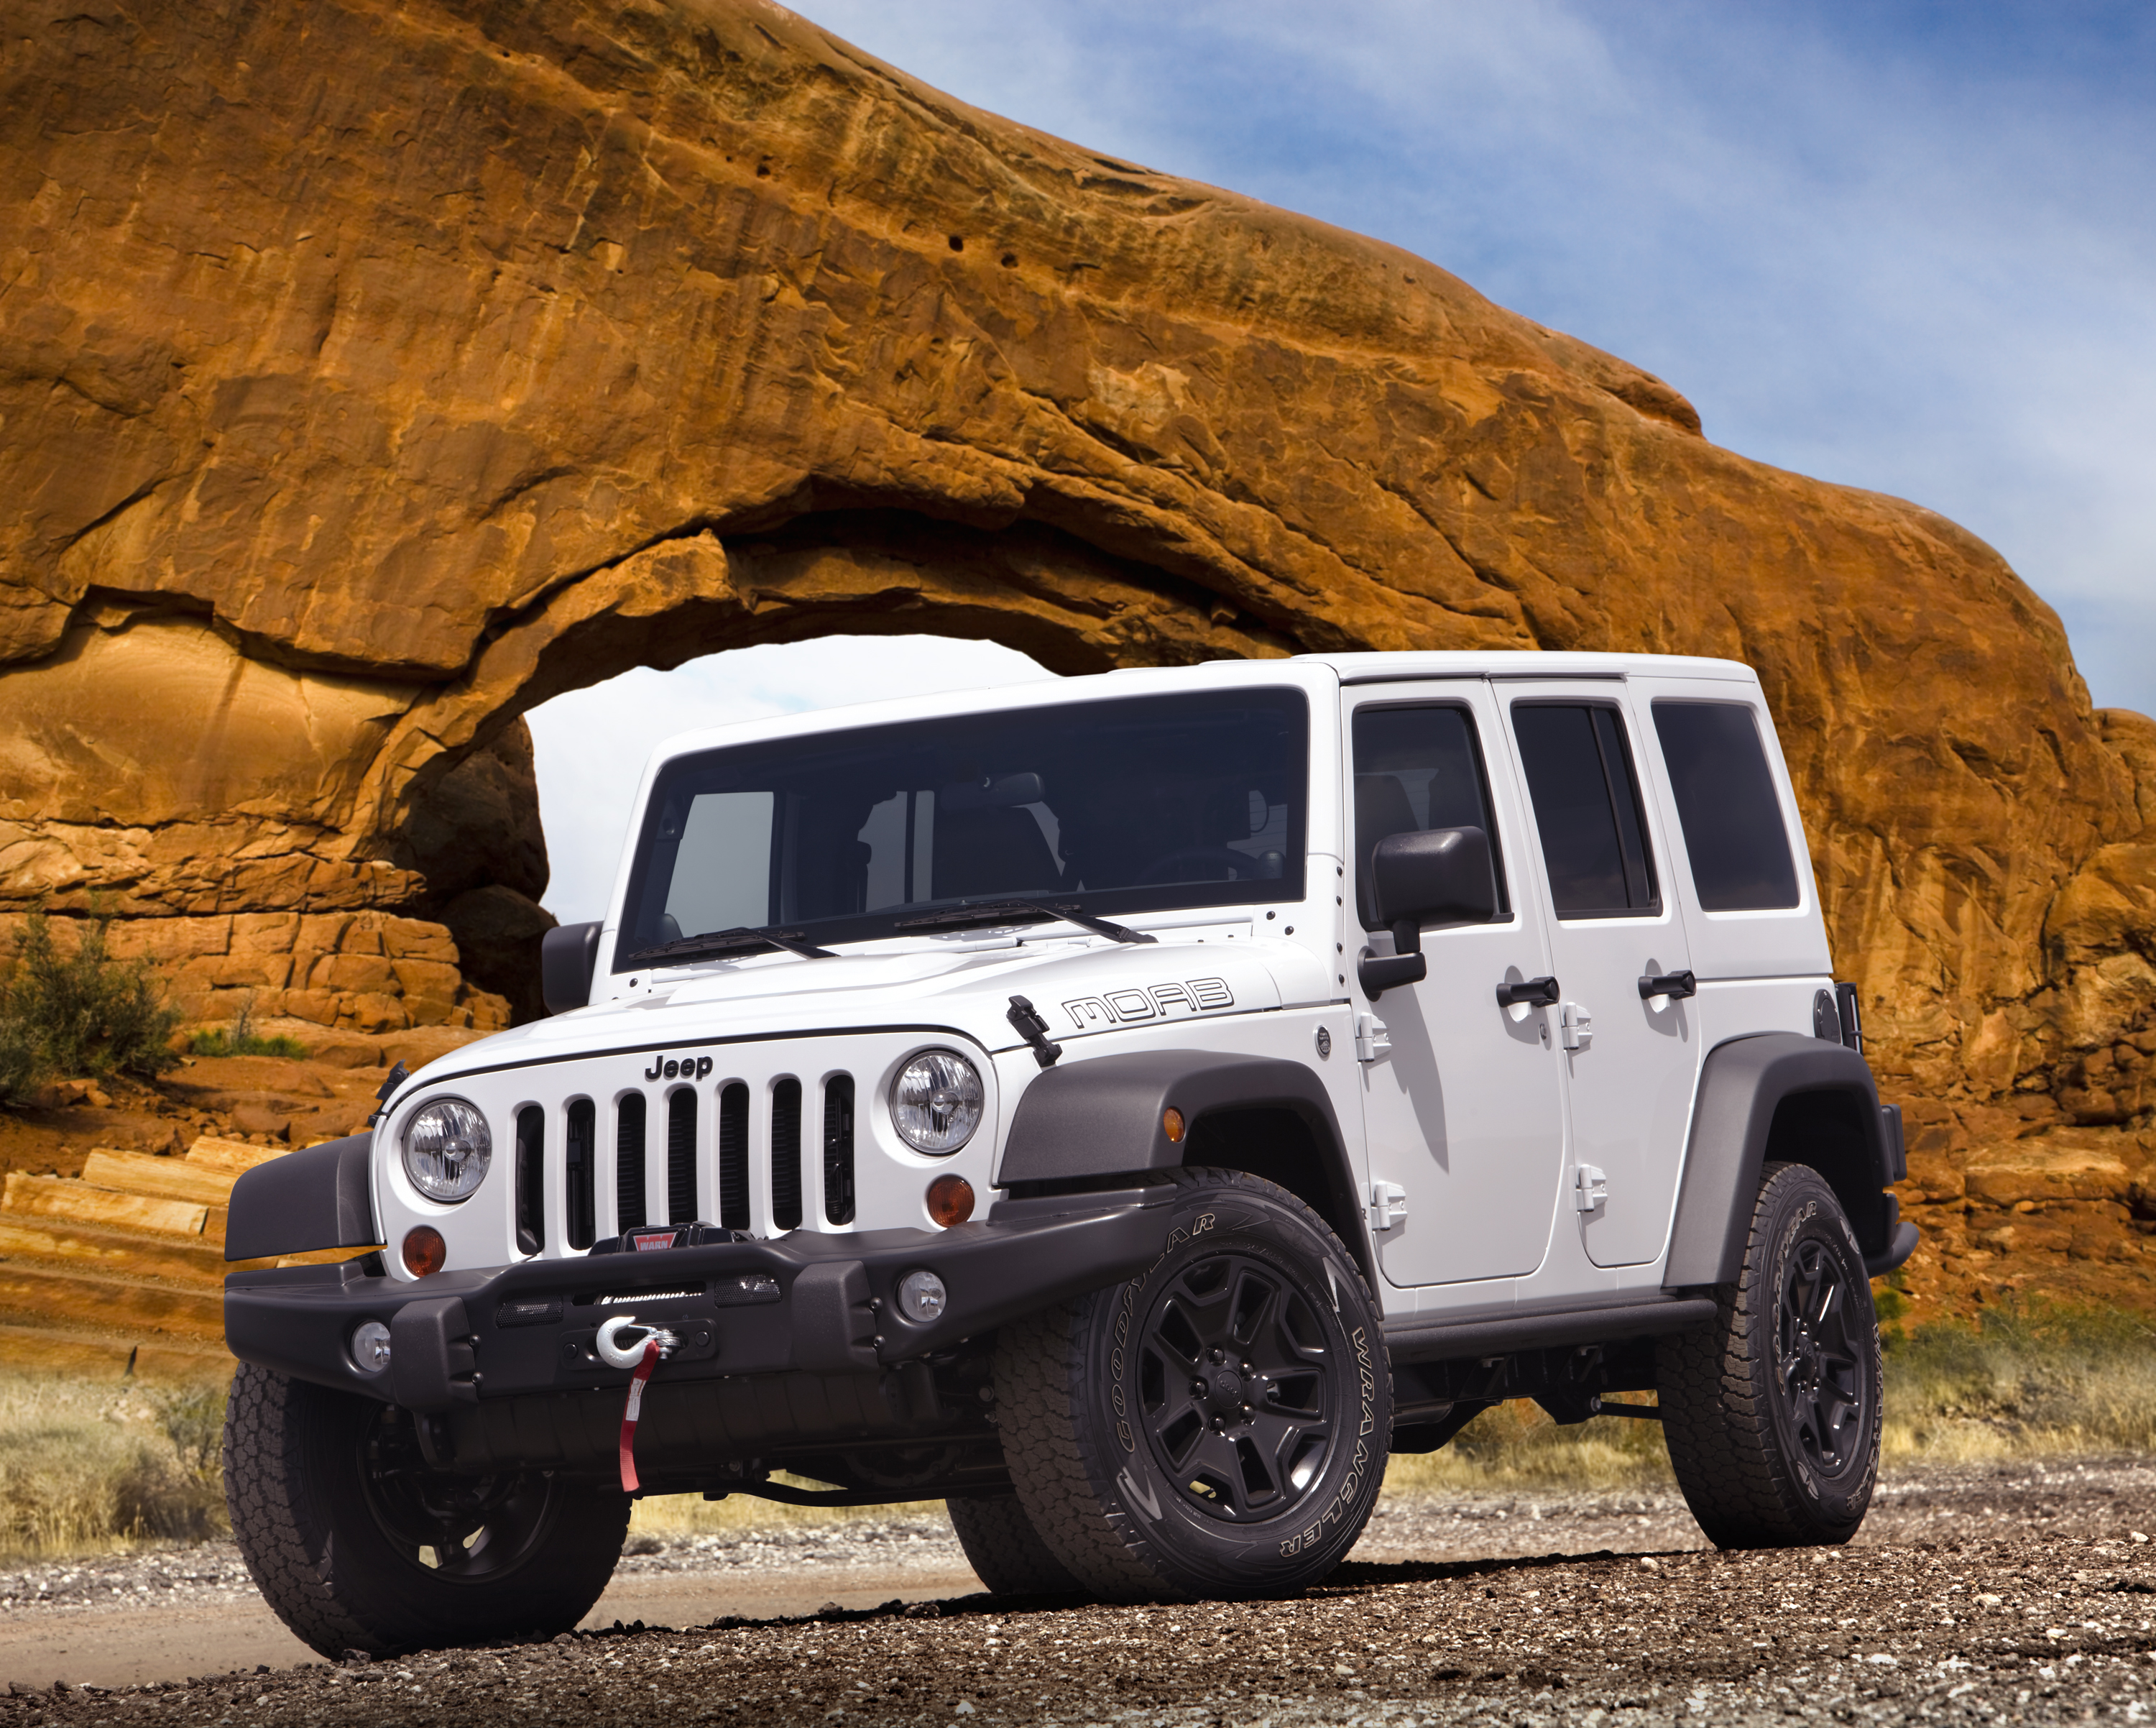 High Quality The 2013 Jeep Wrangler Moab Is Not A Rubicon